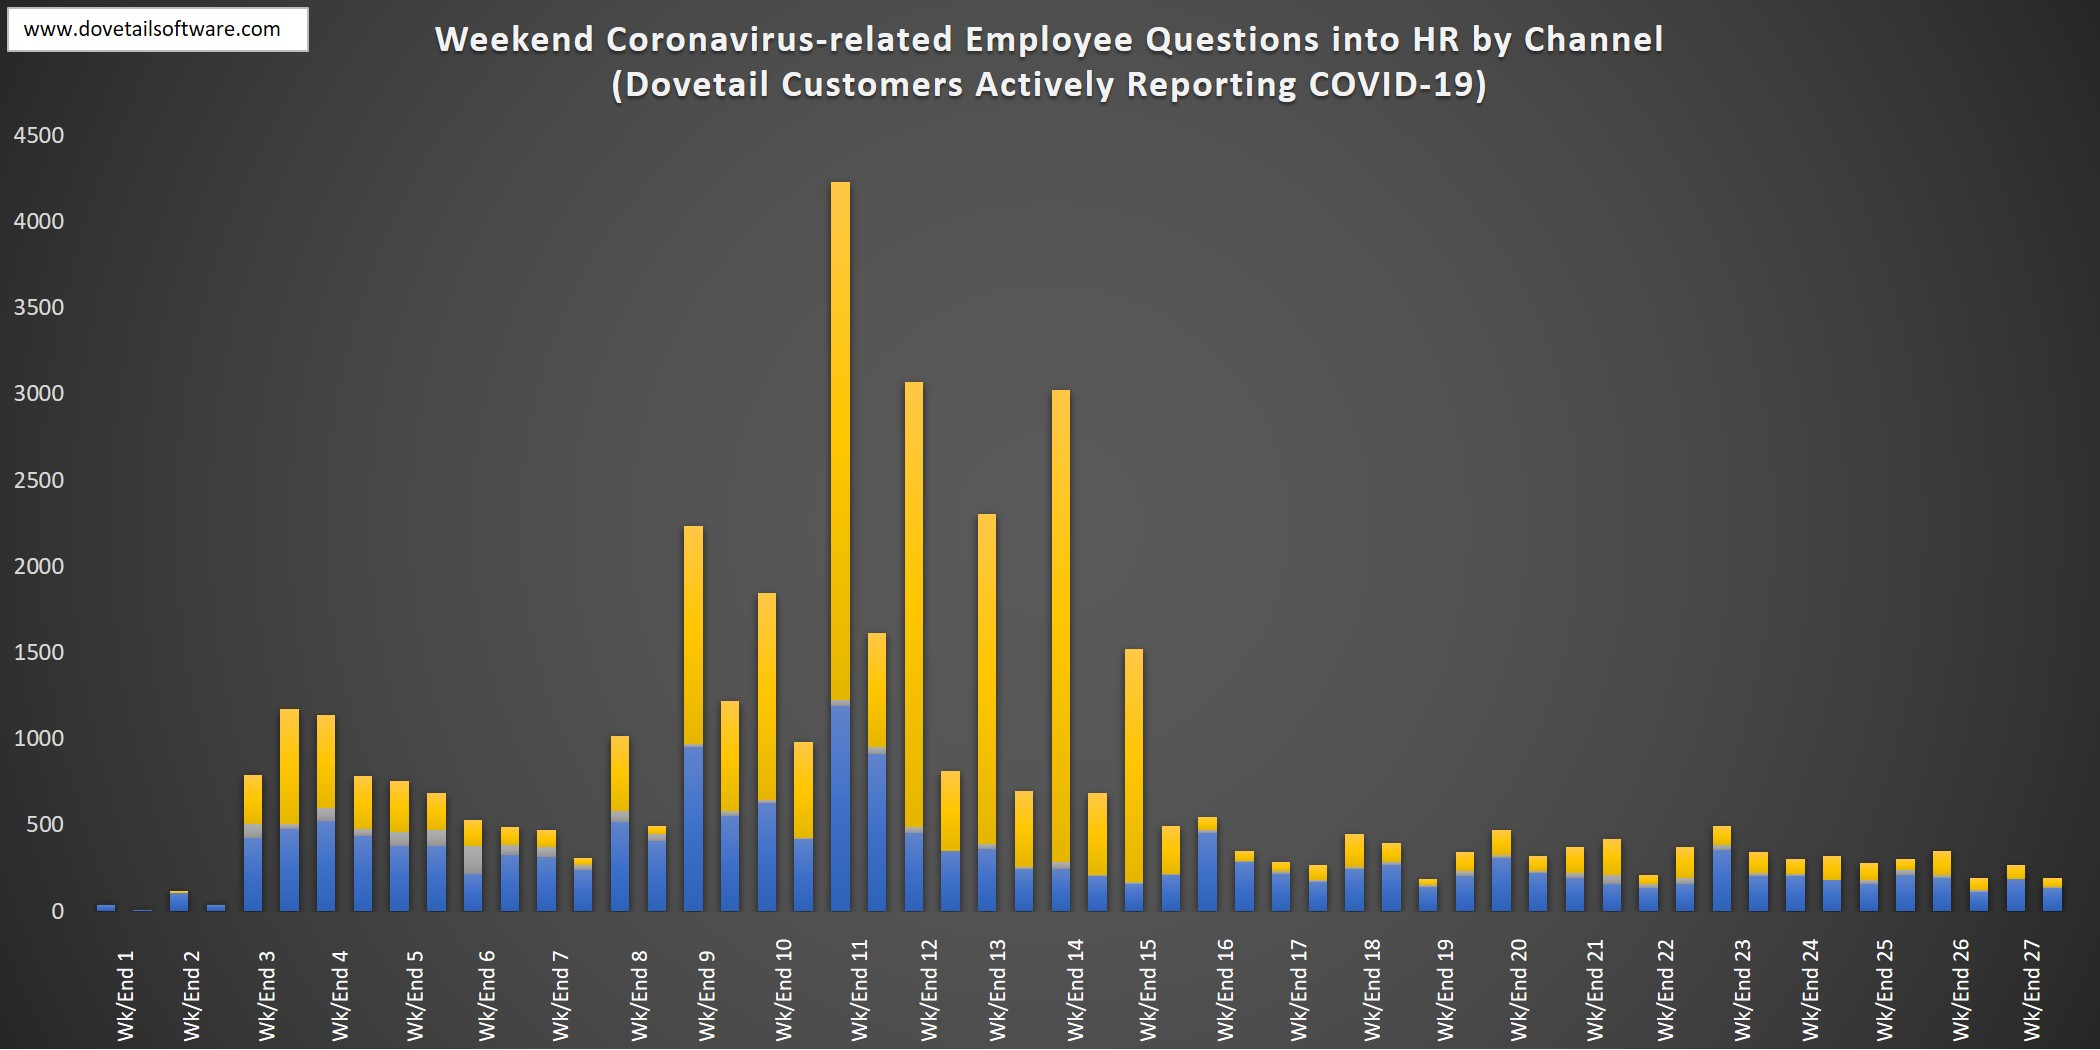 Weekend Coronavirus Employee Questions